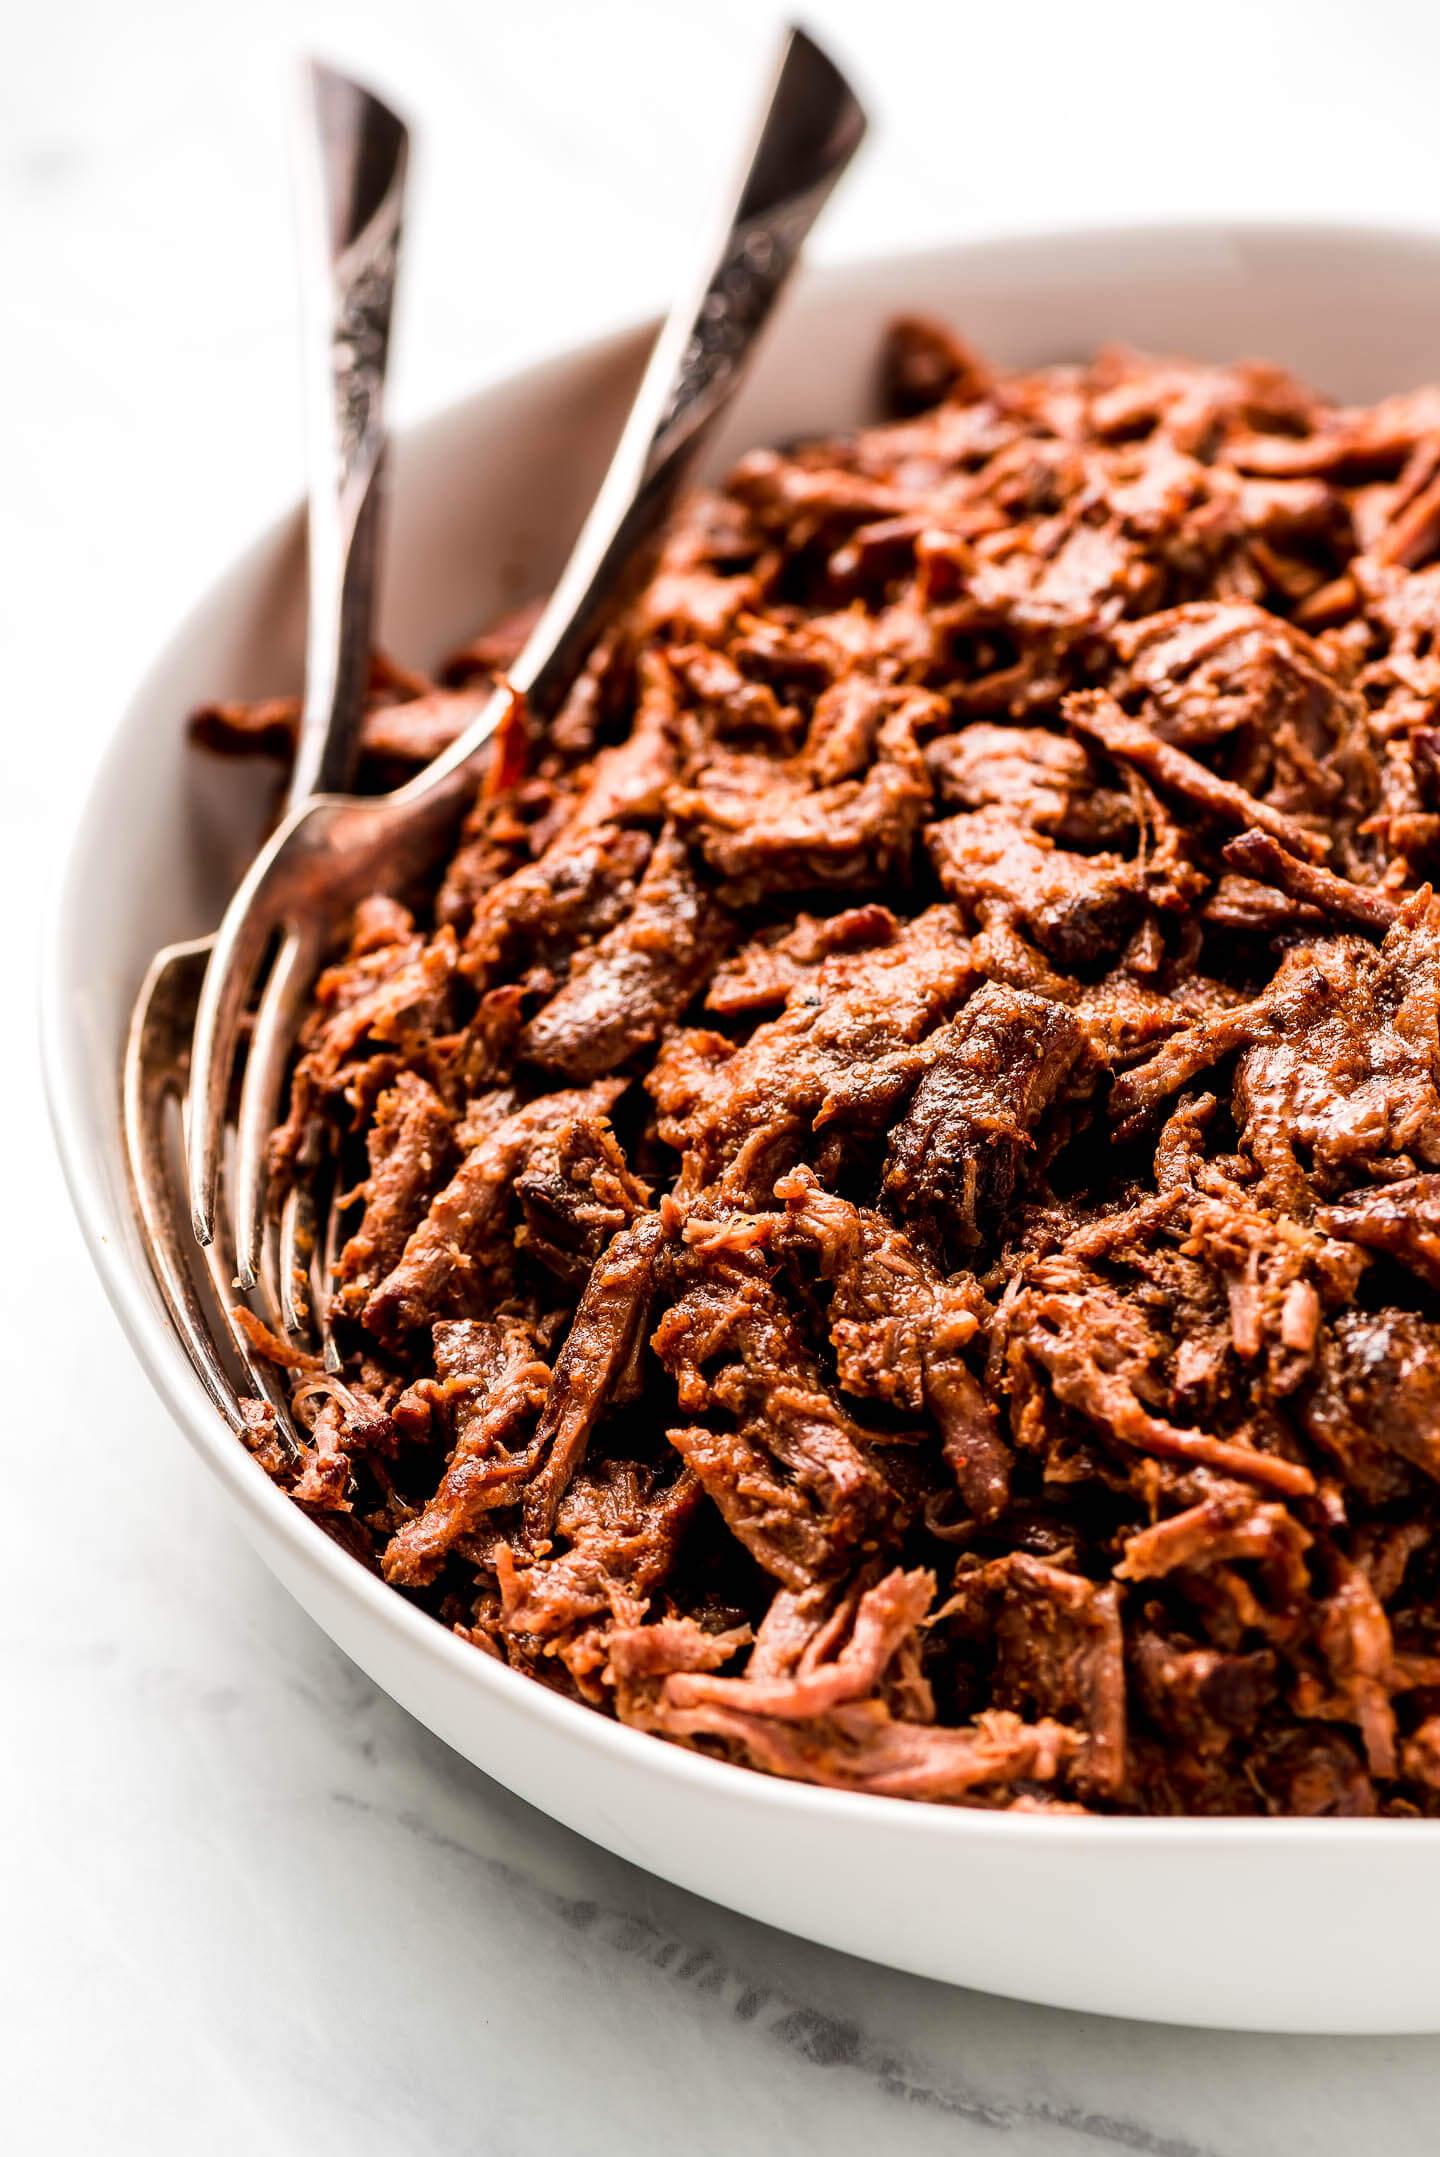 A large serving bowl of shredded Beef Barbacoa.